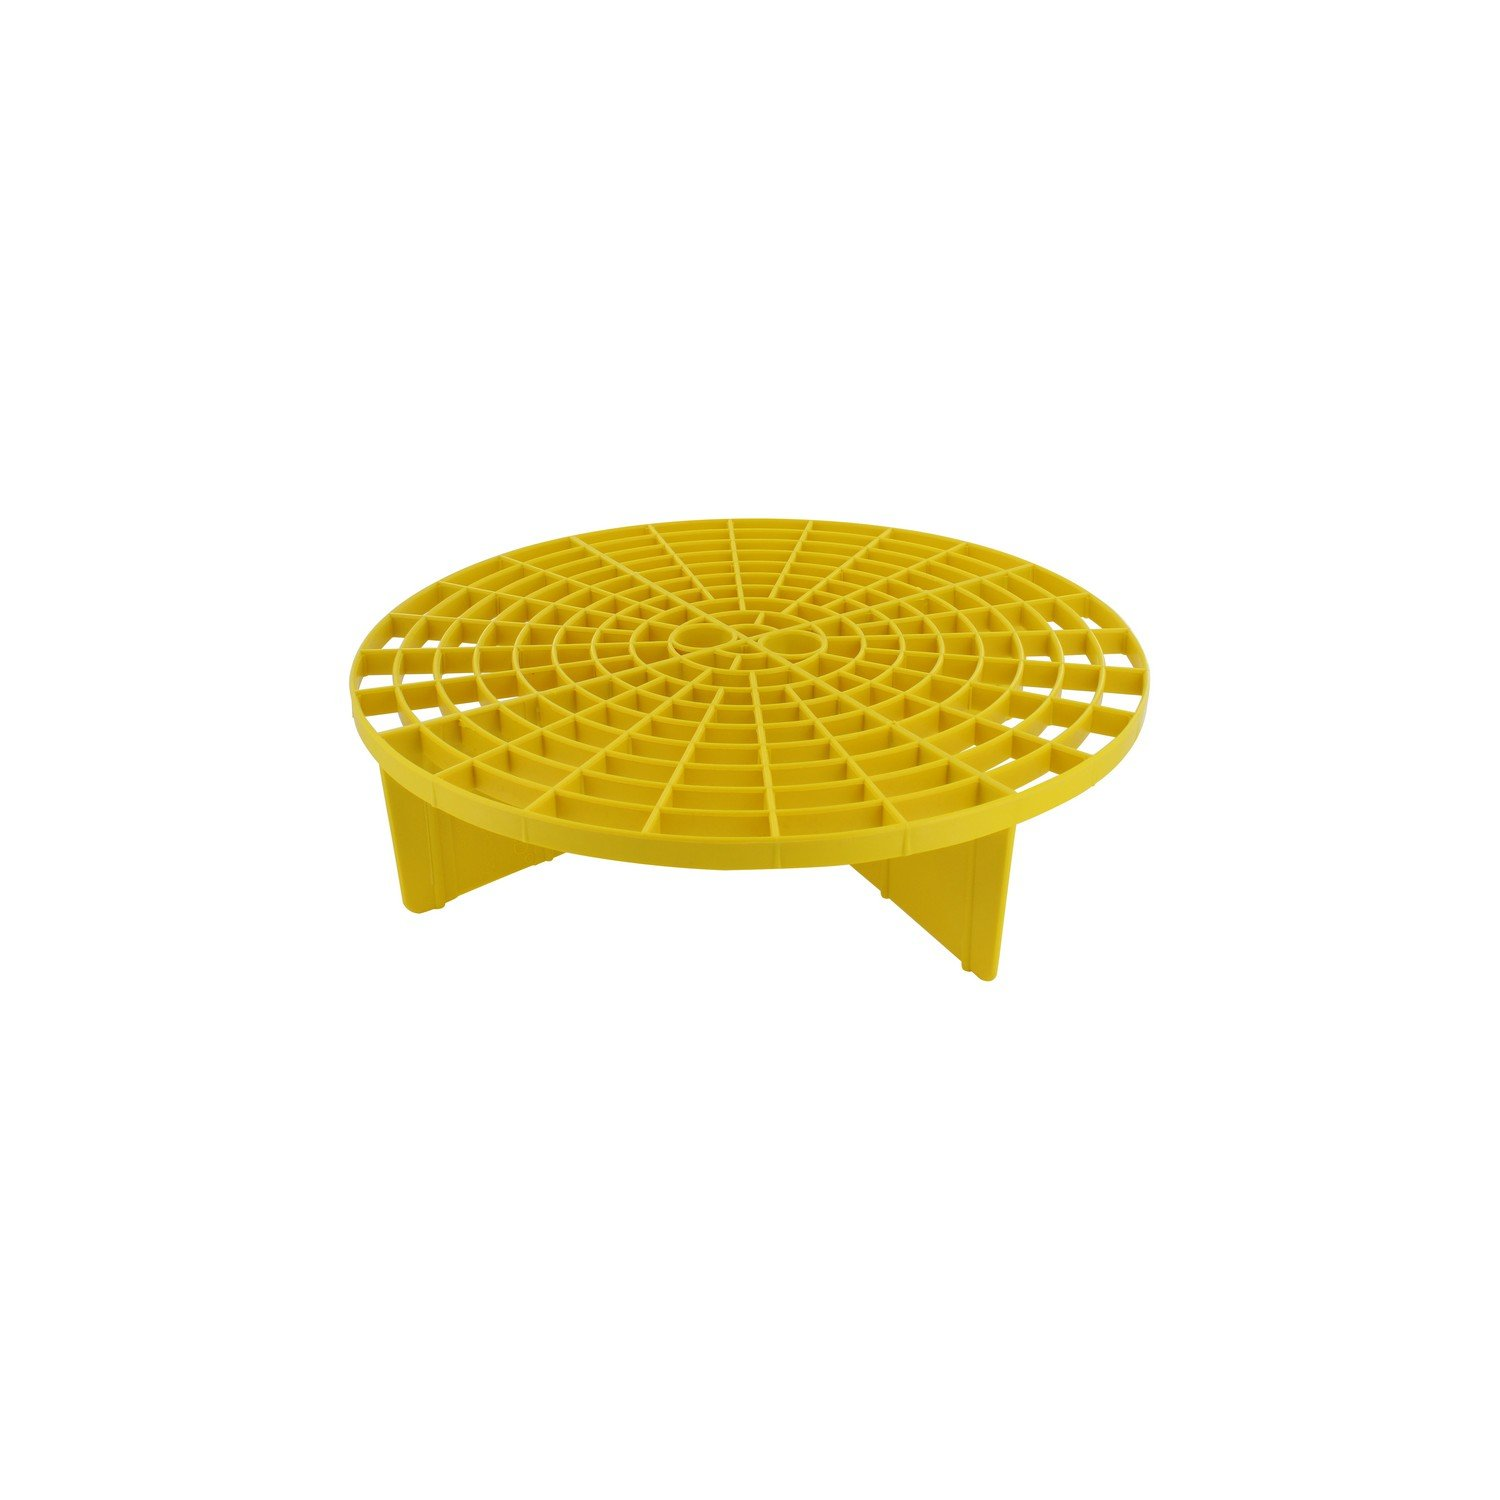 Grit Guard Insert (Yellow) - Fits 12 inch Diameter Bucket with Black Washboard